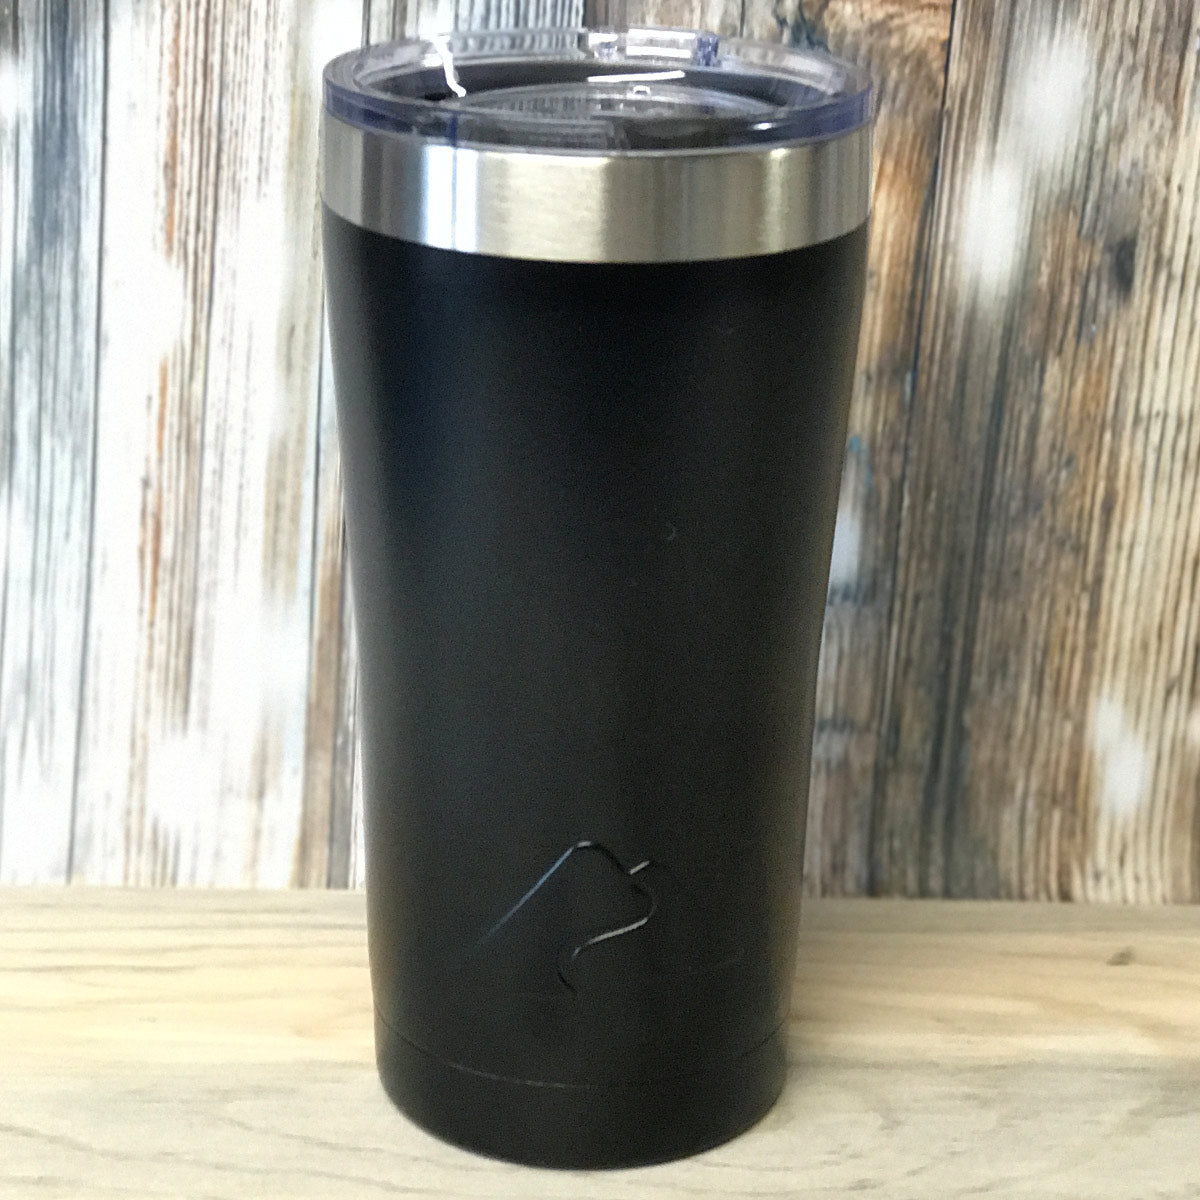 be043cb96f2 ... Fuh-Cup™ Tumbler - Pack of 4 Tumblers - Ozark Trail 20 oz Classic